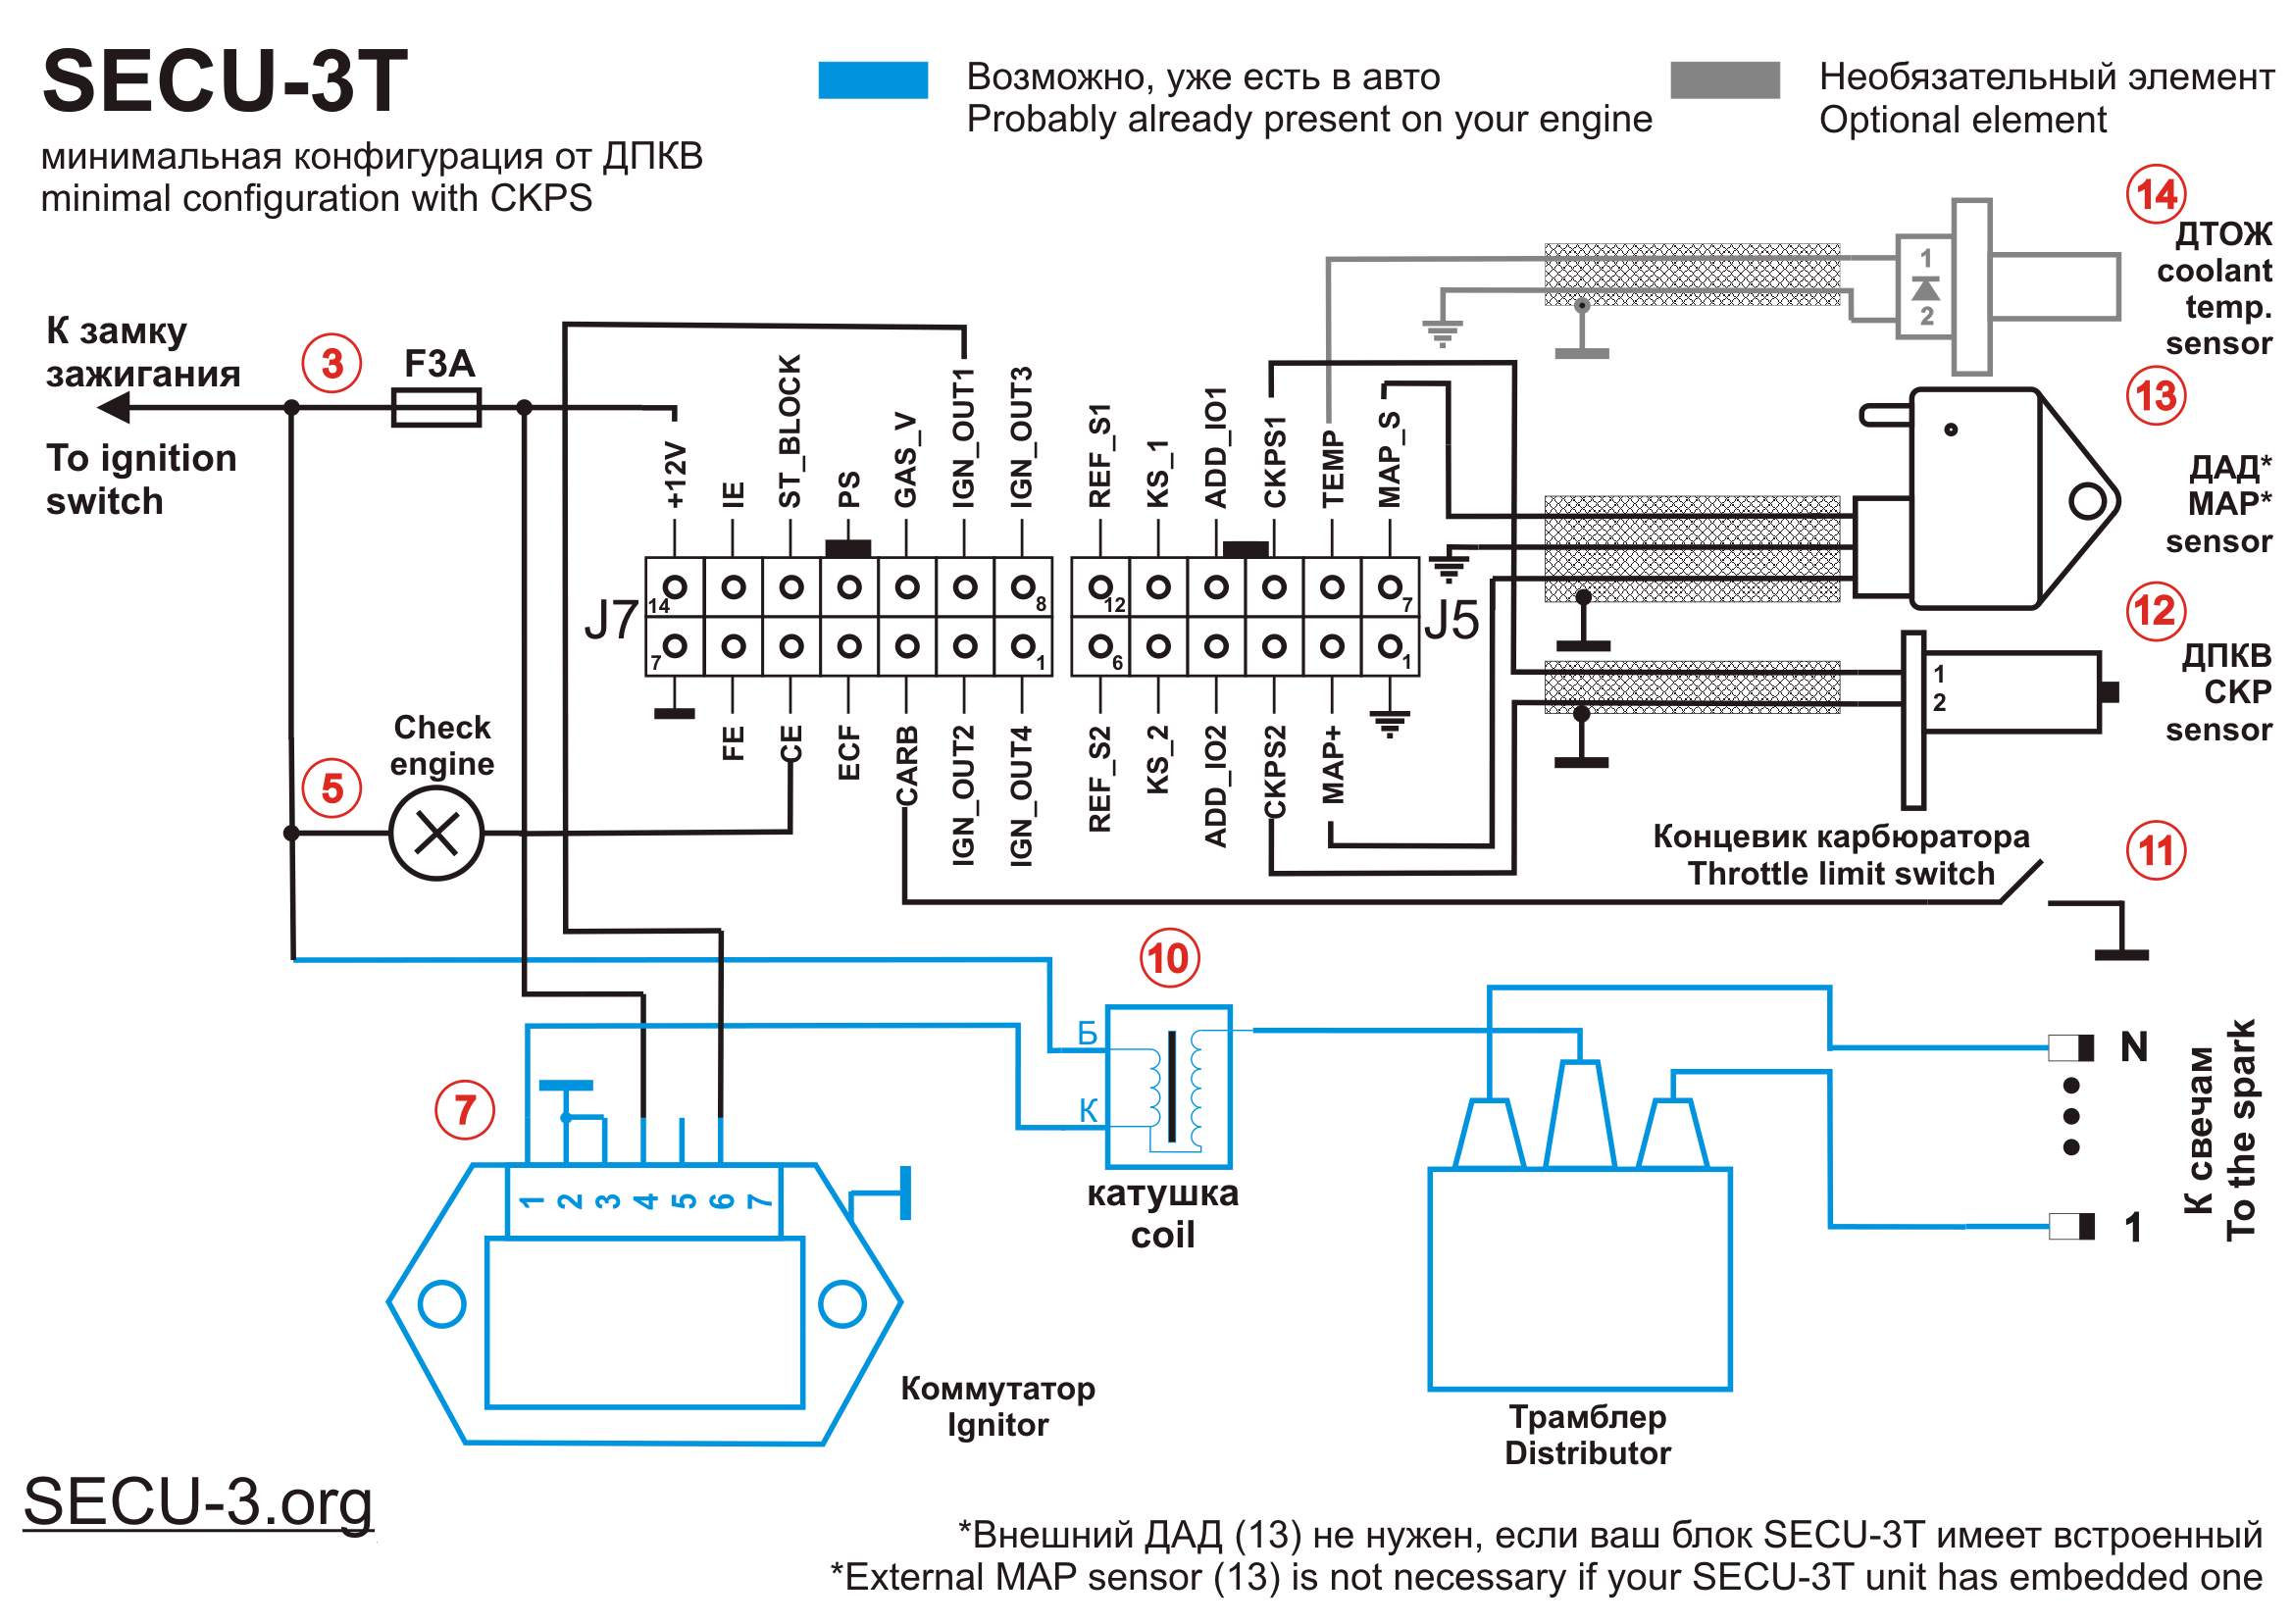 Block Diagram SECU-3T